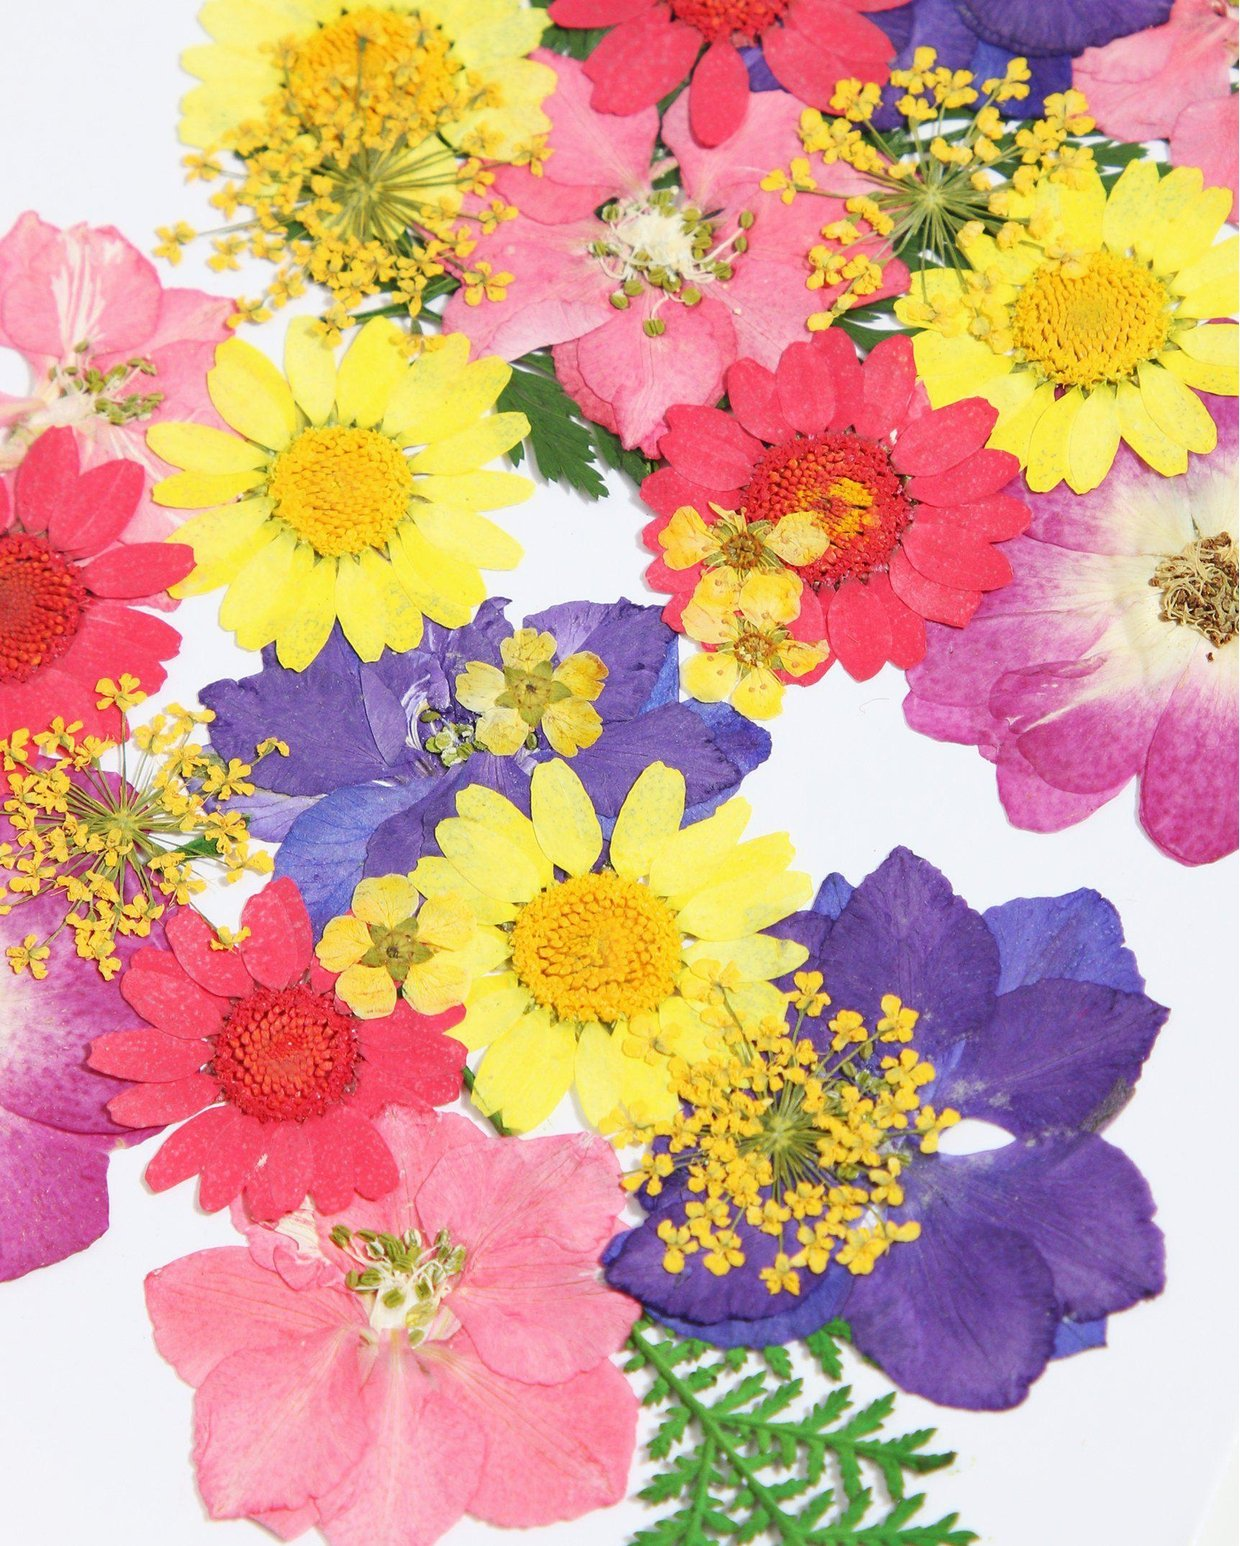 Mixed Pressed Flowers